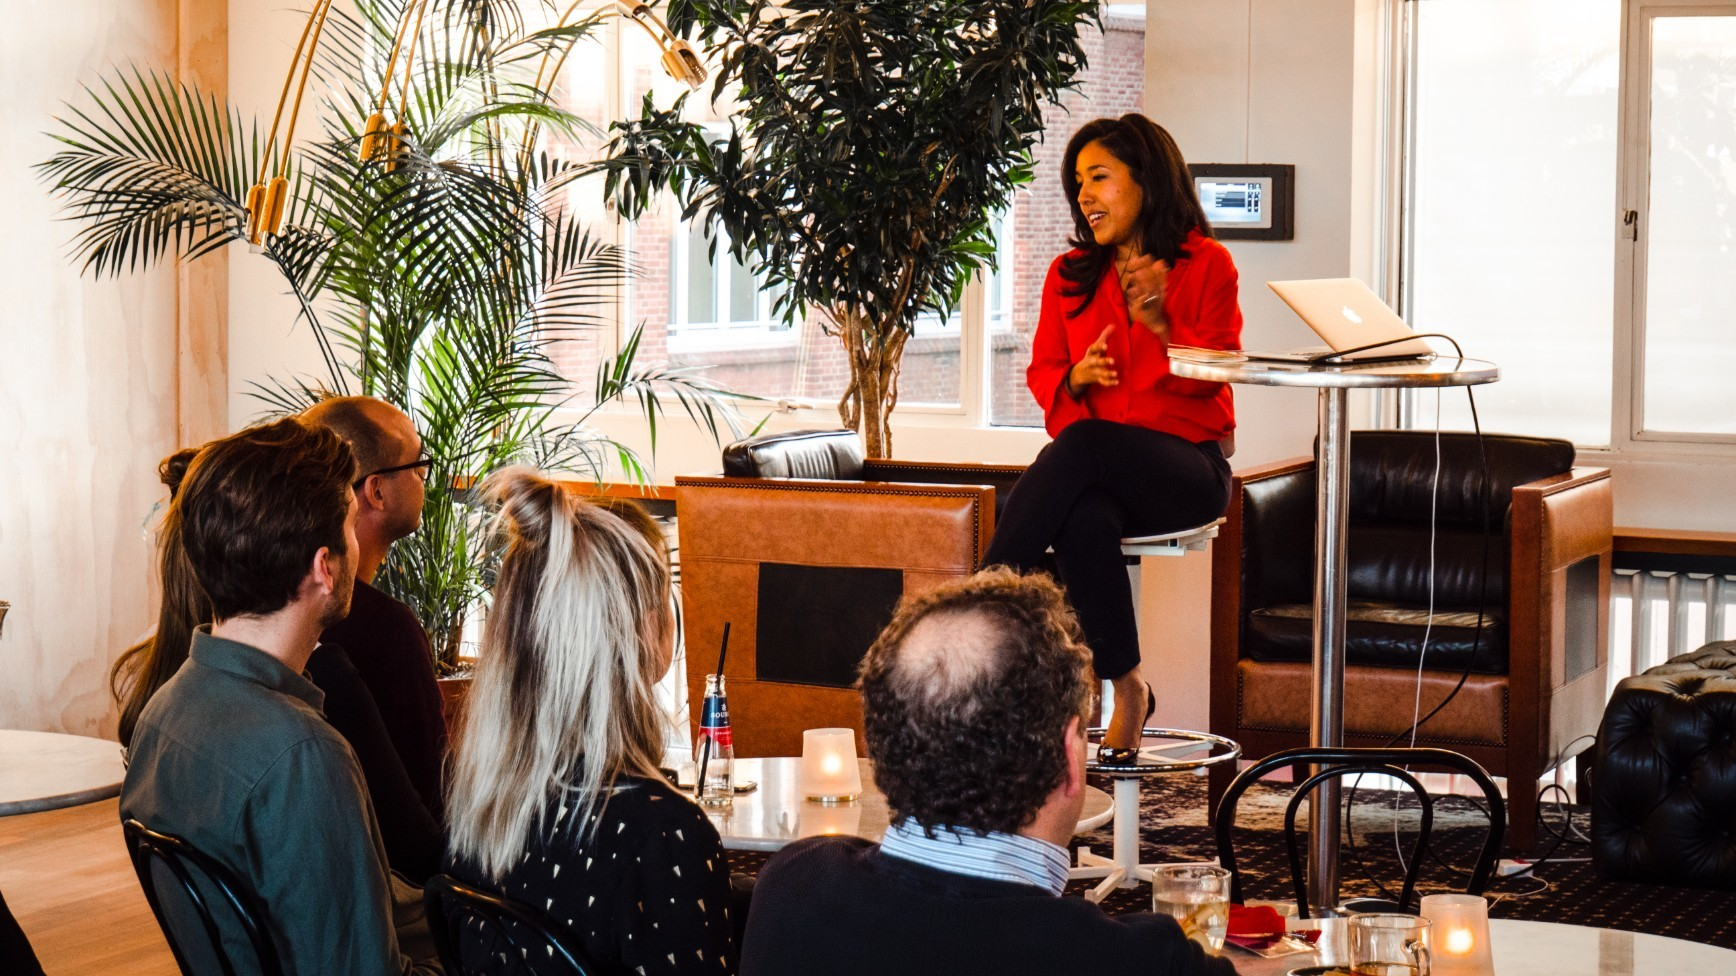 Founder Fireside: growing a company from a female perspective